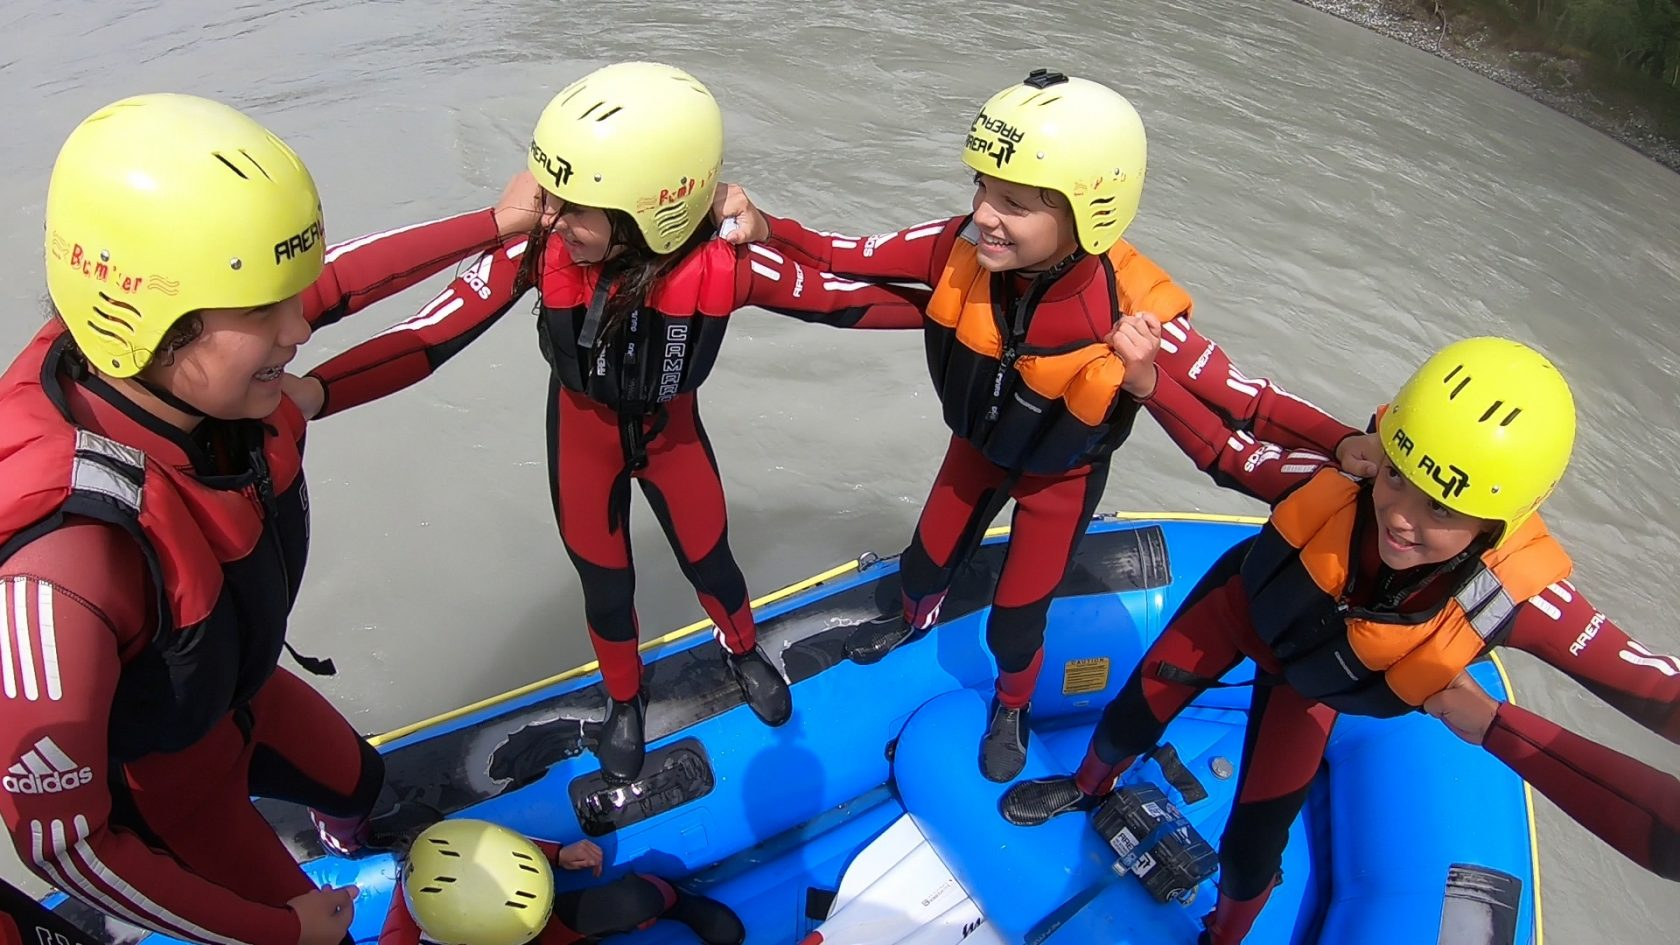 Rafting for children at AREA 47